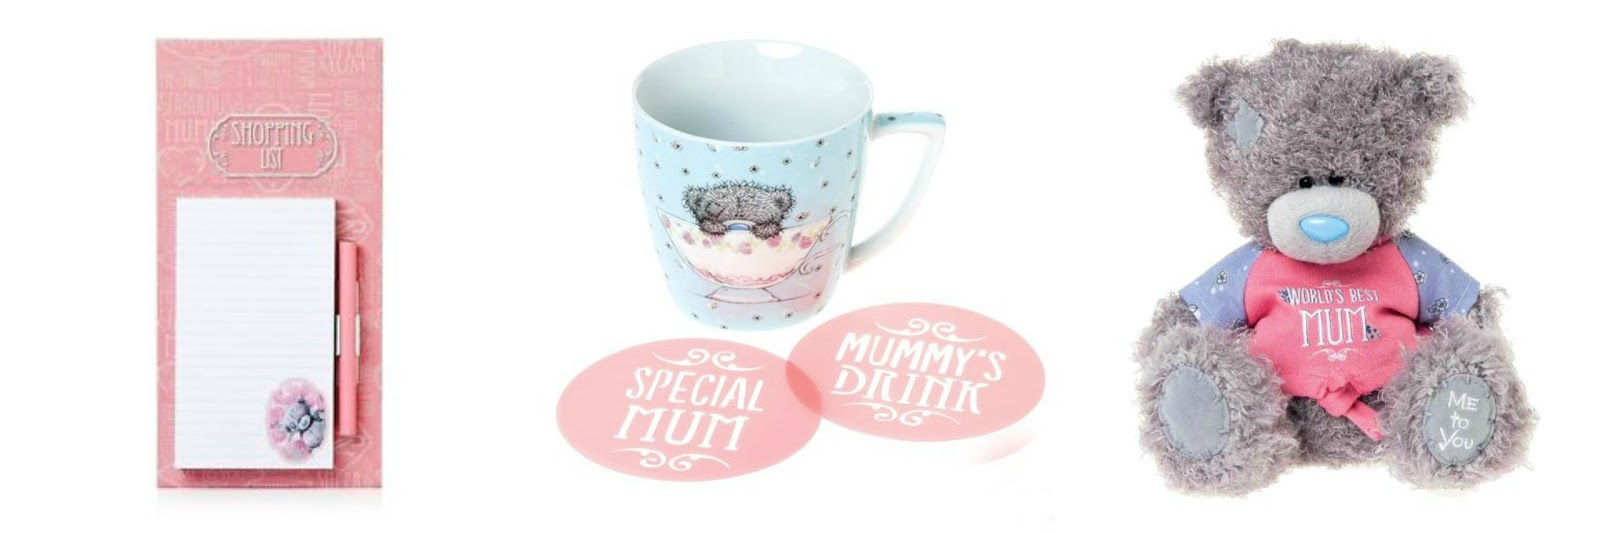 Tatty Teddy Mother's Day Gifts - Bear, Mug and Stencil Set and Shopping List Pad